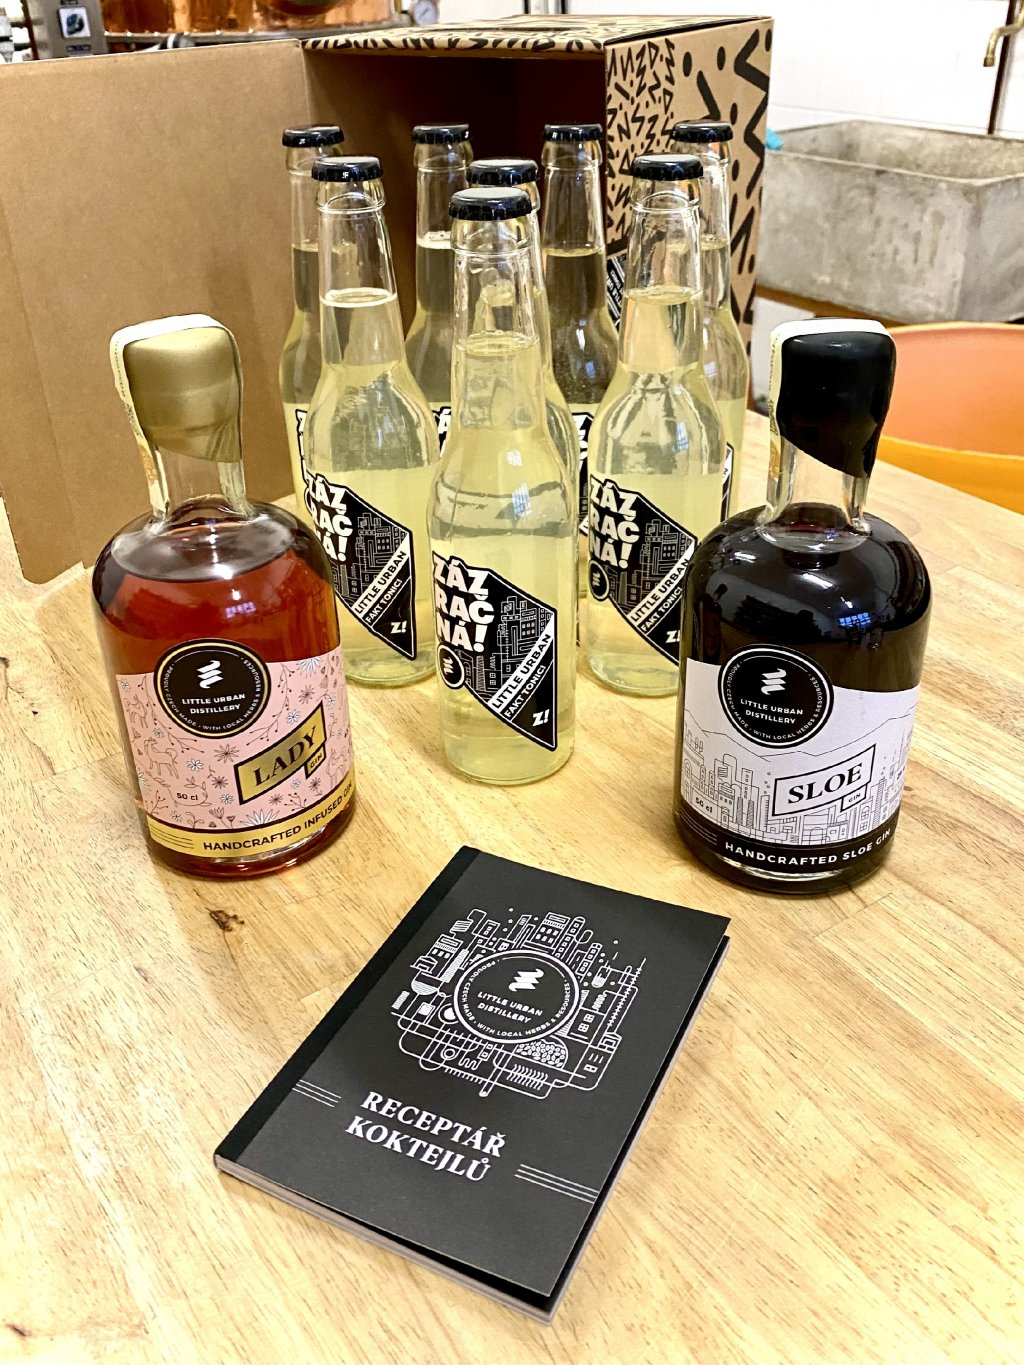 XXL Box Little Urban Lady 50cl 43% a Sloe Gin 50cl 29% 8 Fakt toniků a Dárek